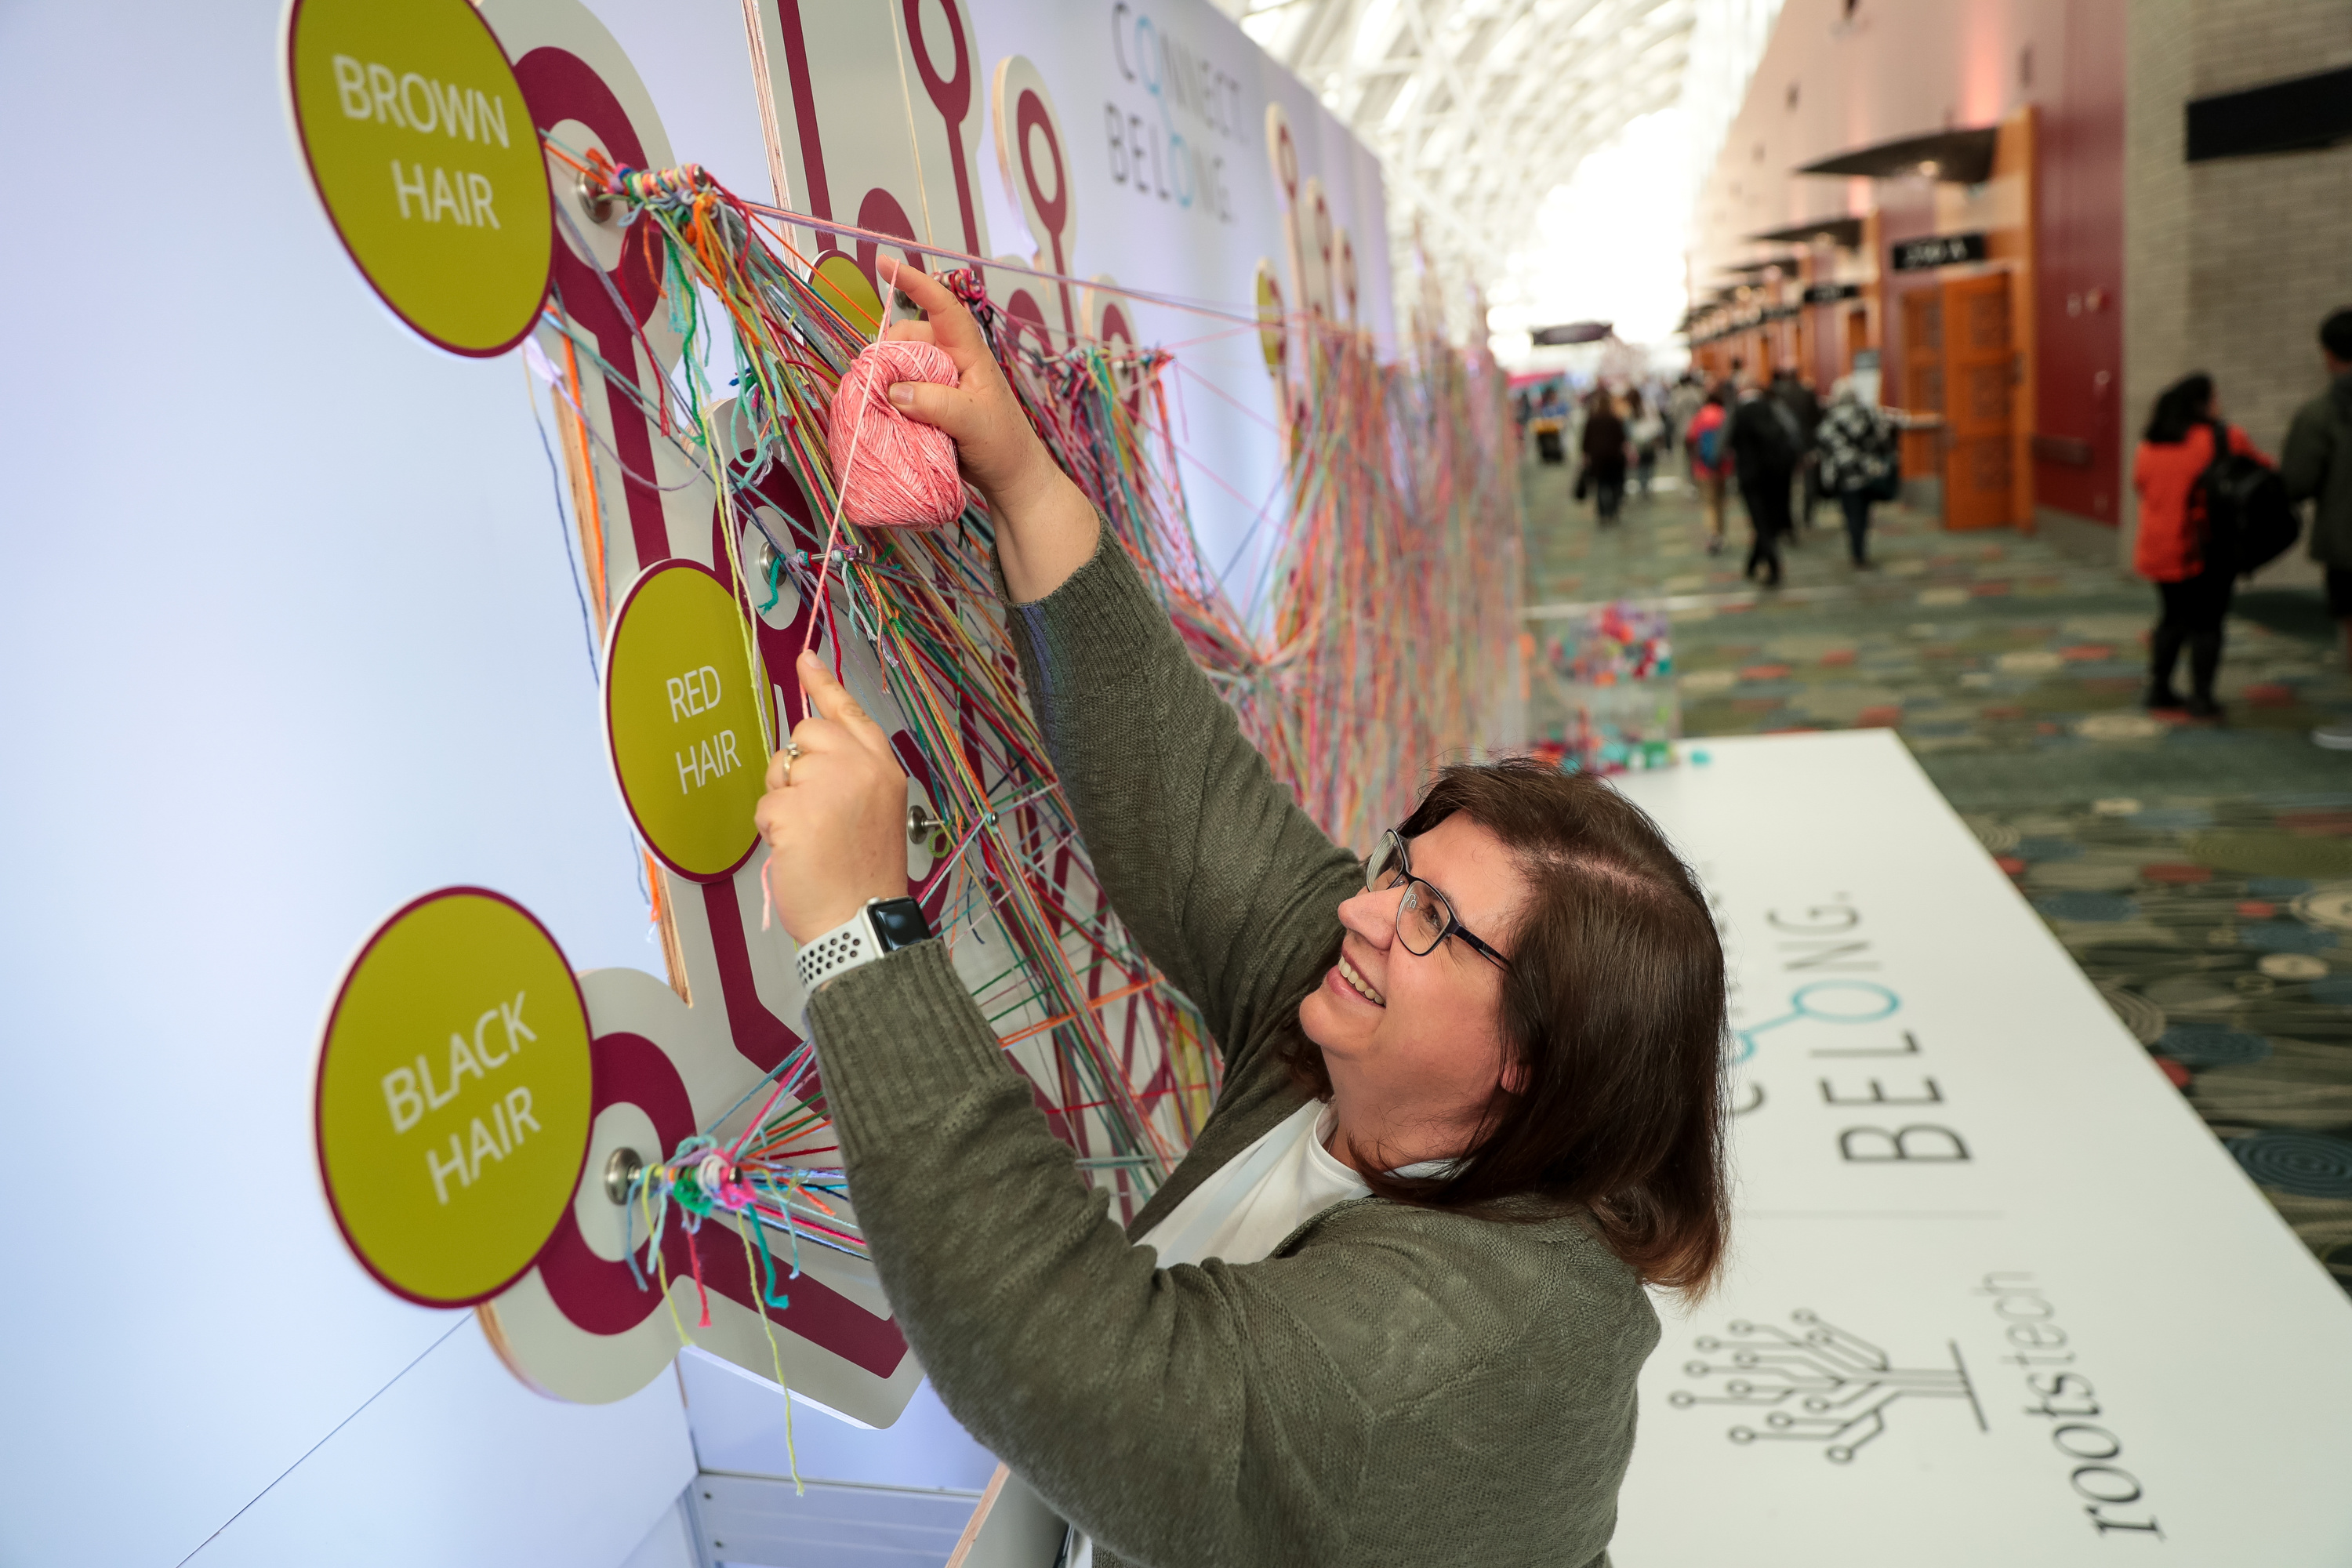 Sandra Hugie interacts with a display at the RootsTech conference at the Salt Palace in Salt Lake City on Friday, March 1, 2019.